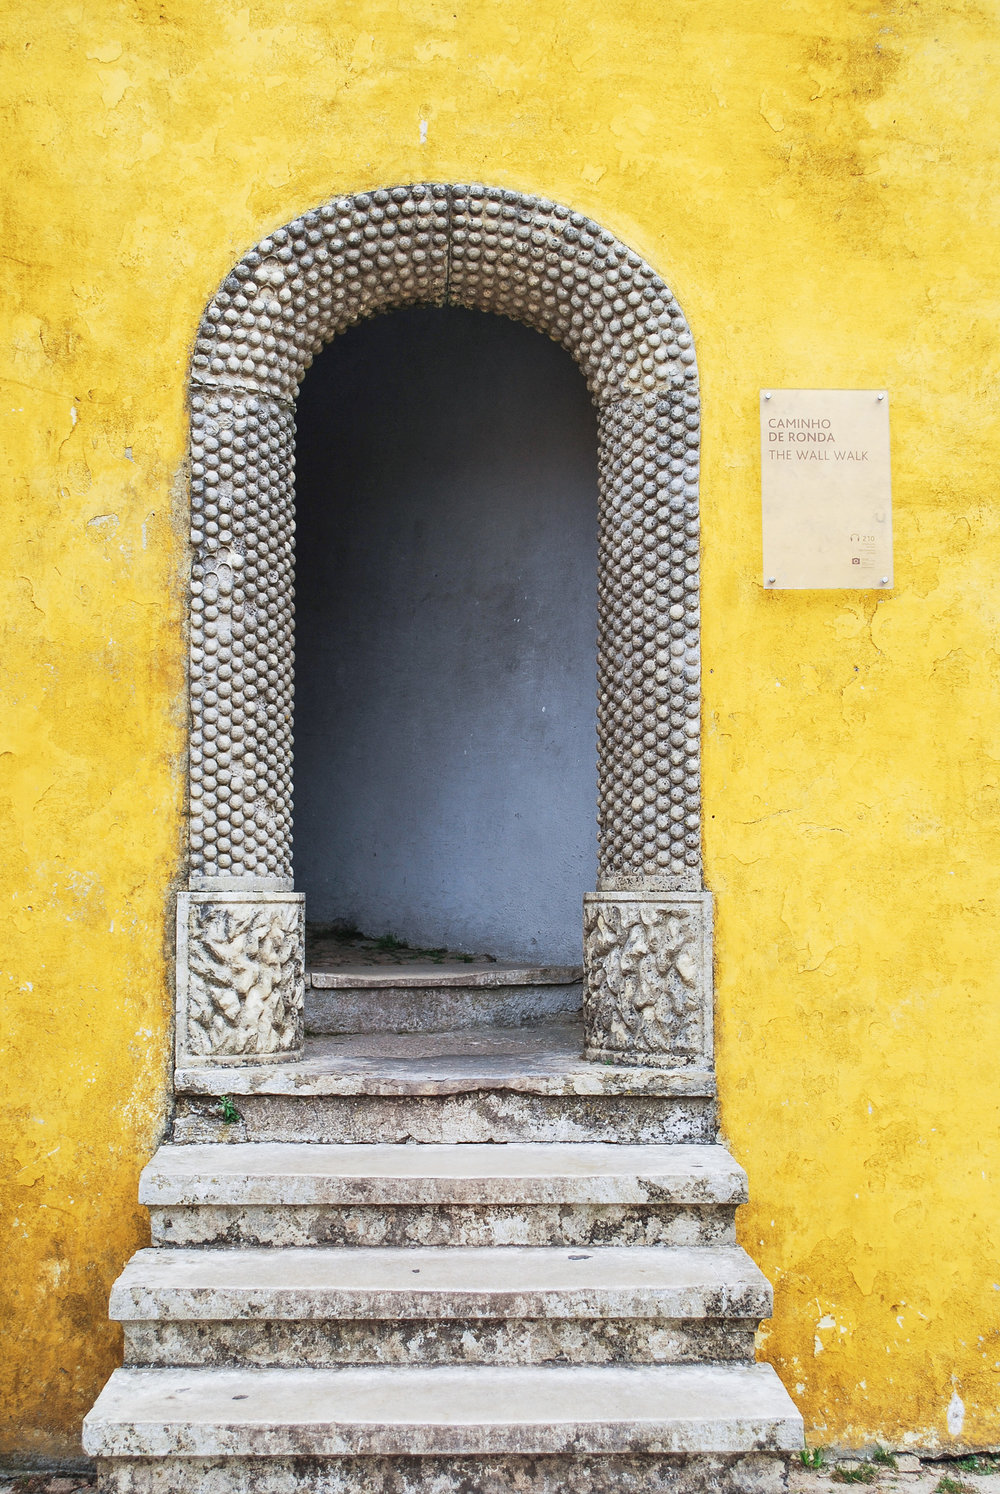 Palácio da Pena / Pena Palace — Visiting Lisbon, Portugal? A Sintra day trip is a must! Read this guide on how to get to Sintra and what to do when you're there.